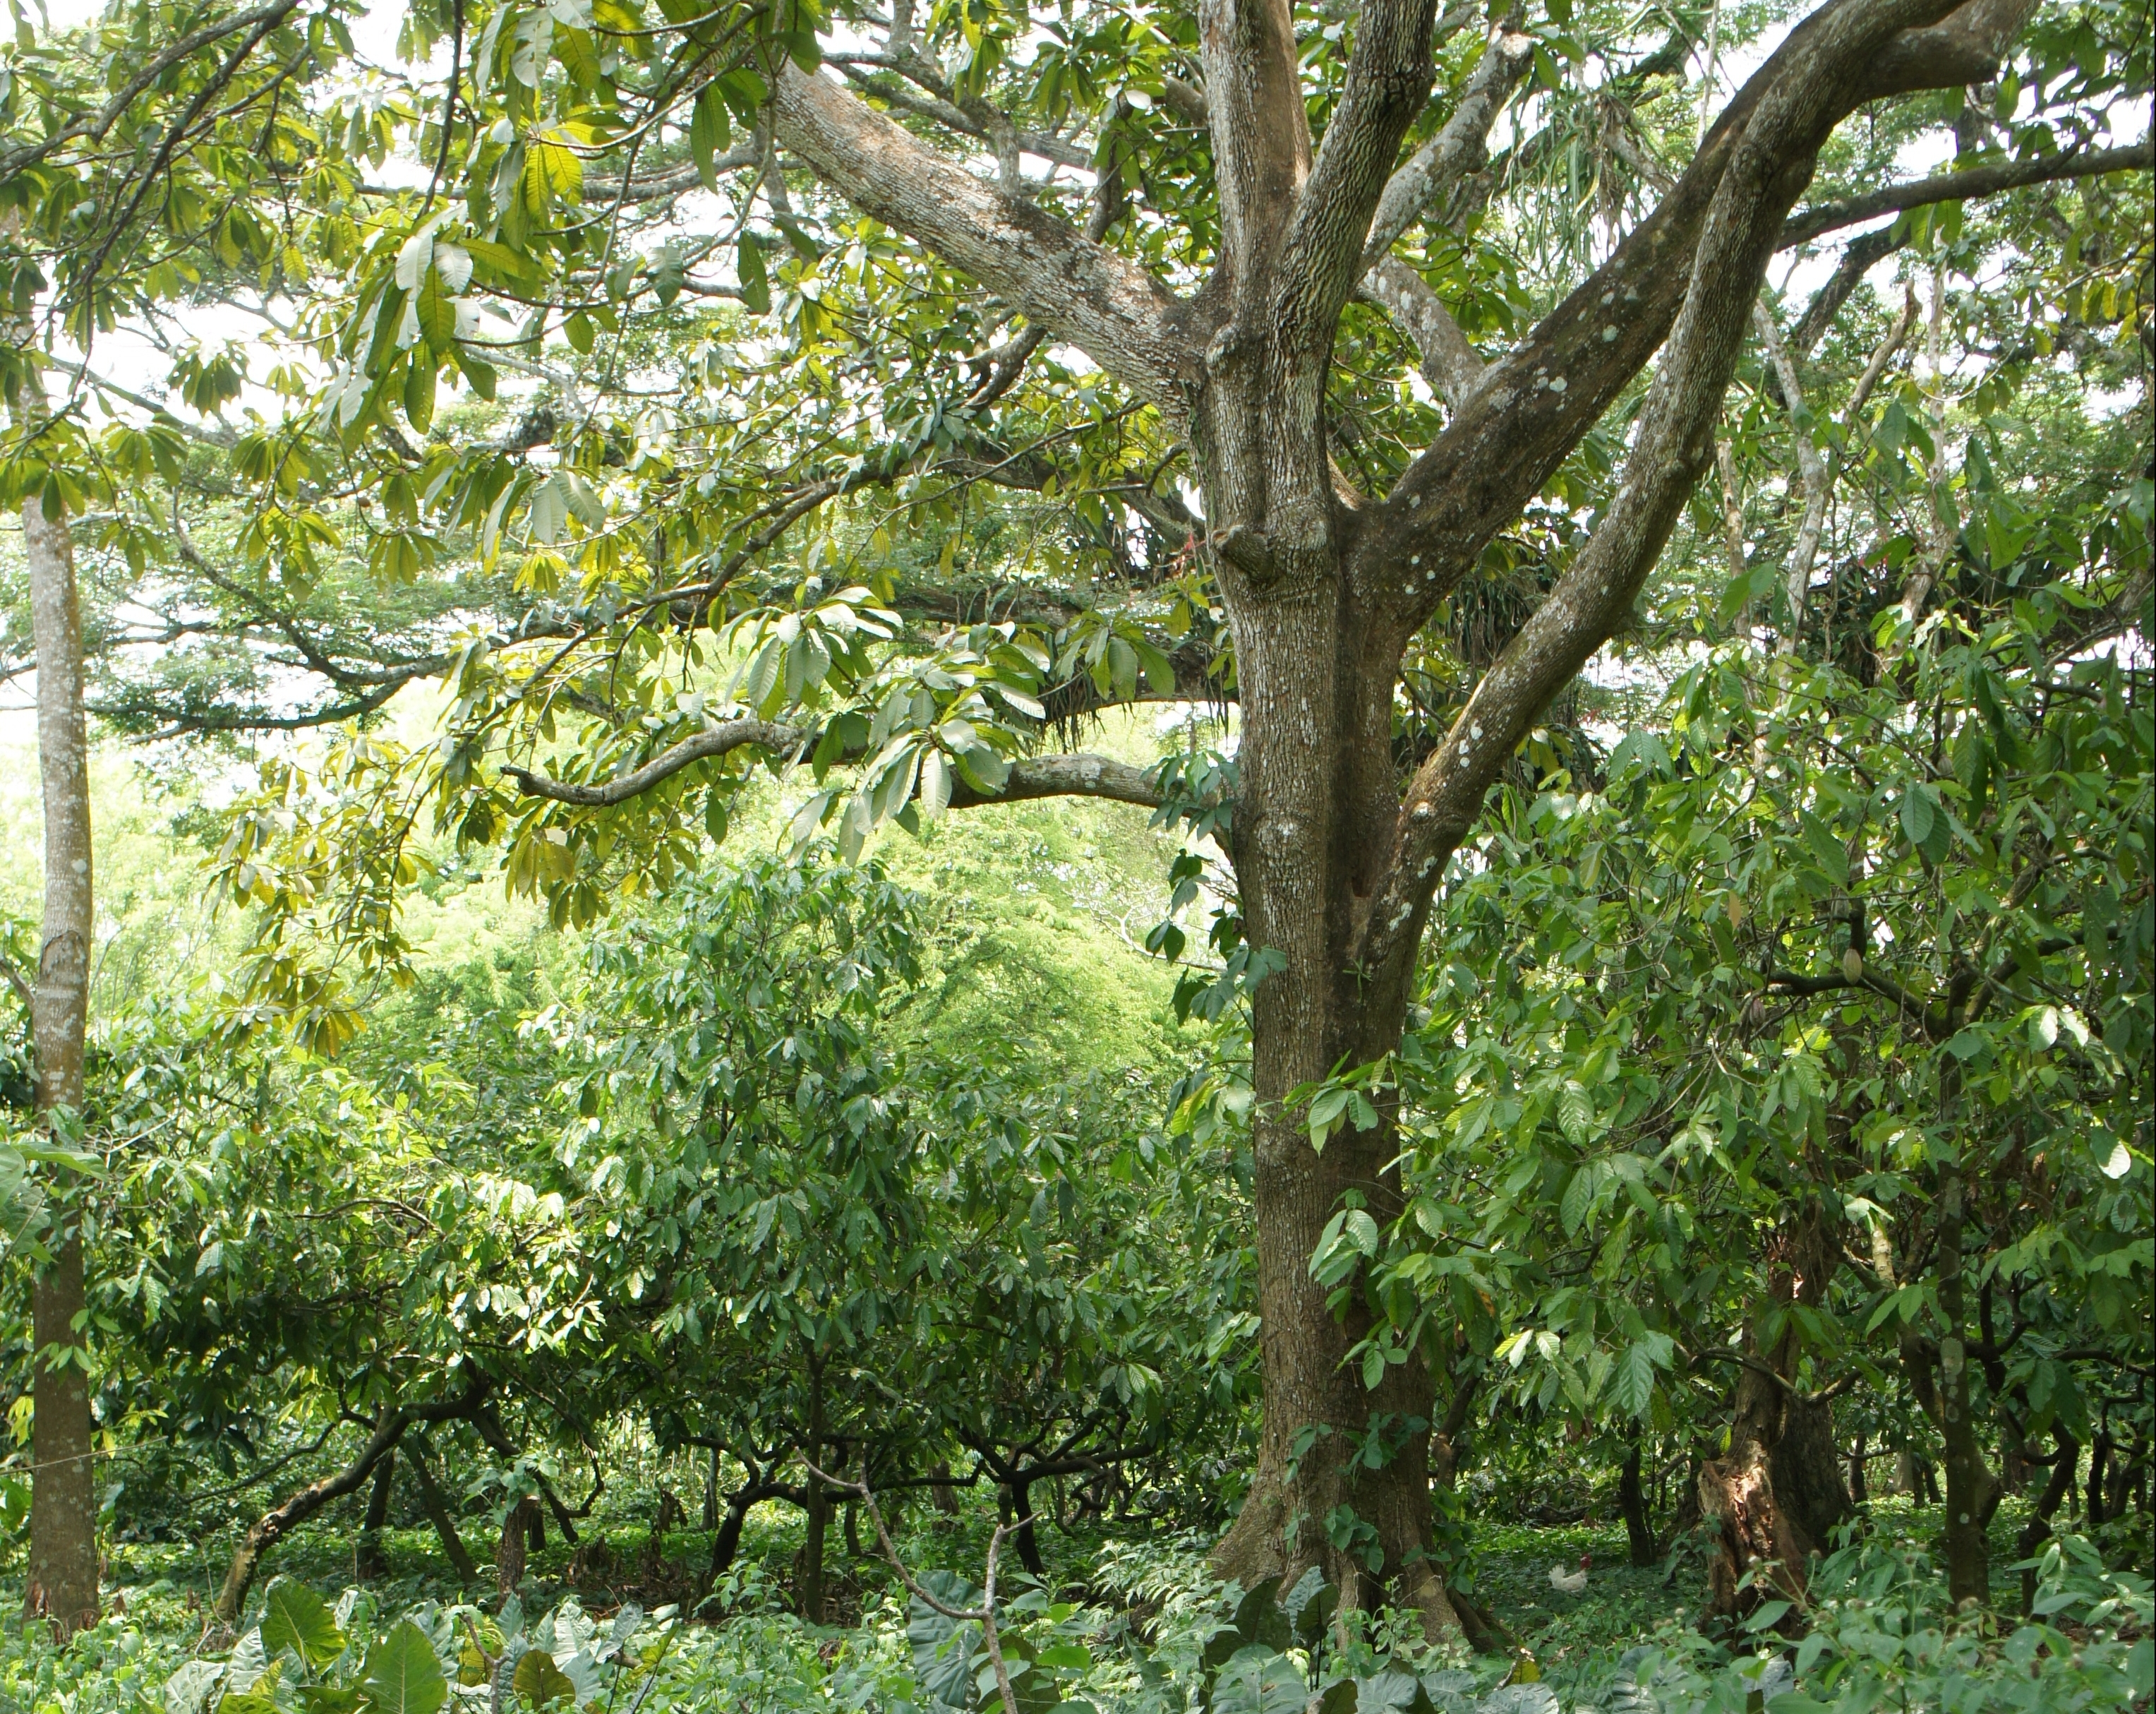 A food forest in Mexico, with among others taro, cacao, ice cream beam and red zapote. This form of edible landscape has been practised here for thousands of years. ©Natvise 2016